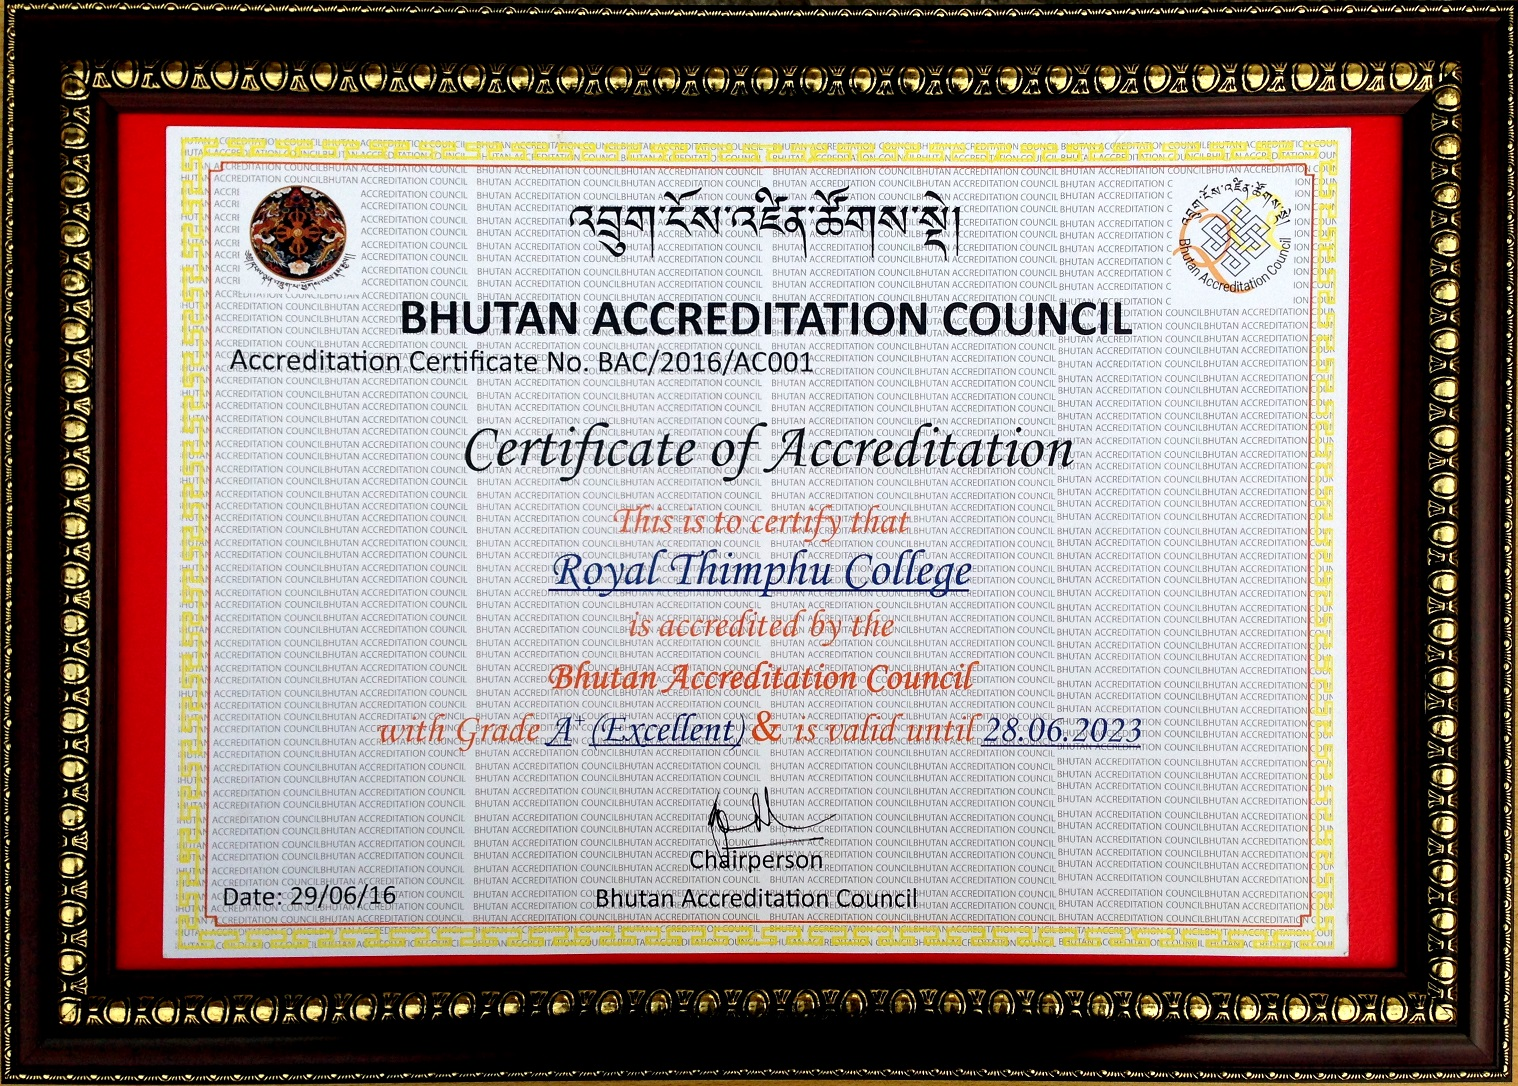 RTC BAC Accreditation Certificate